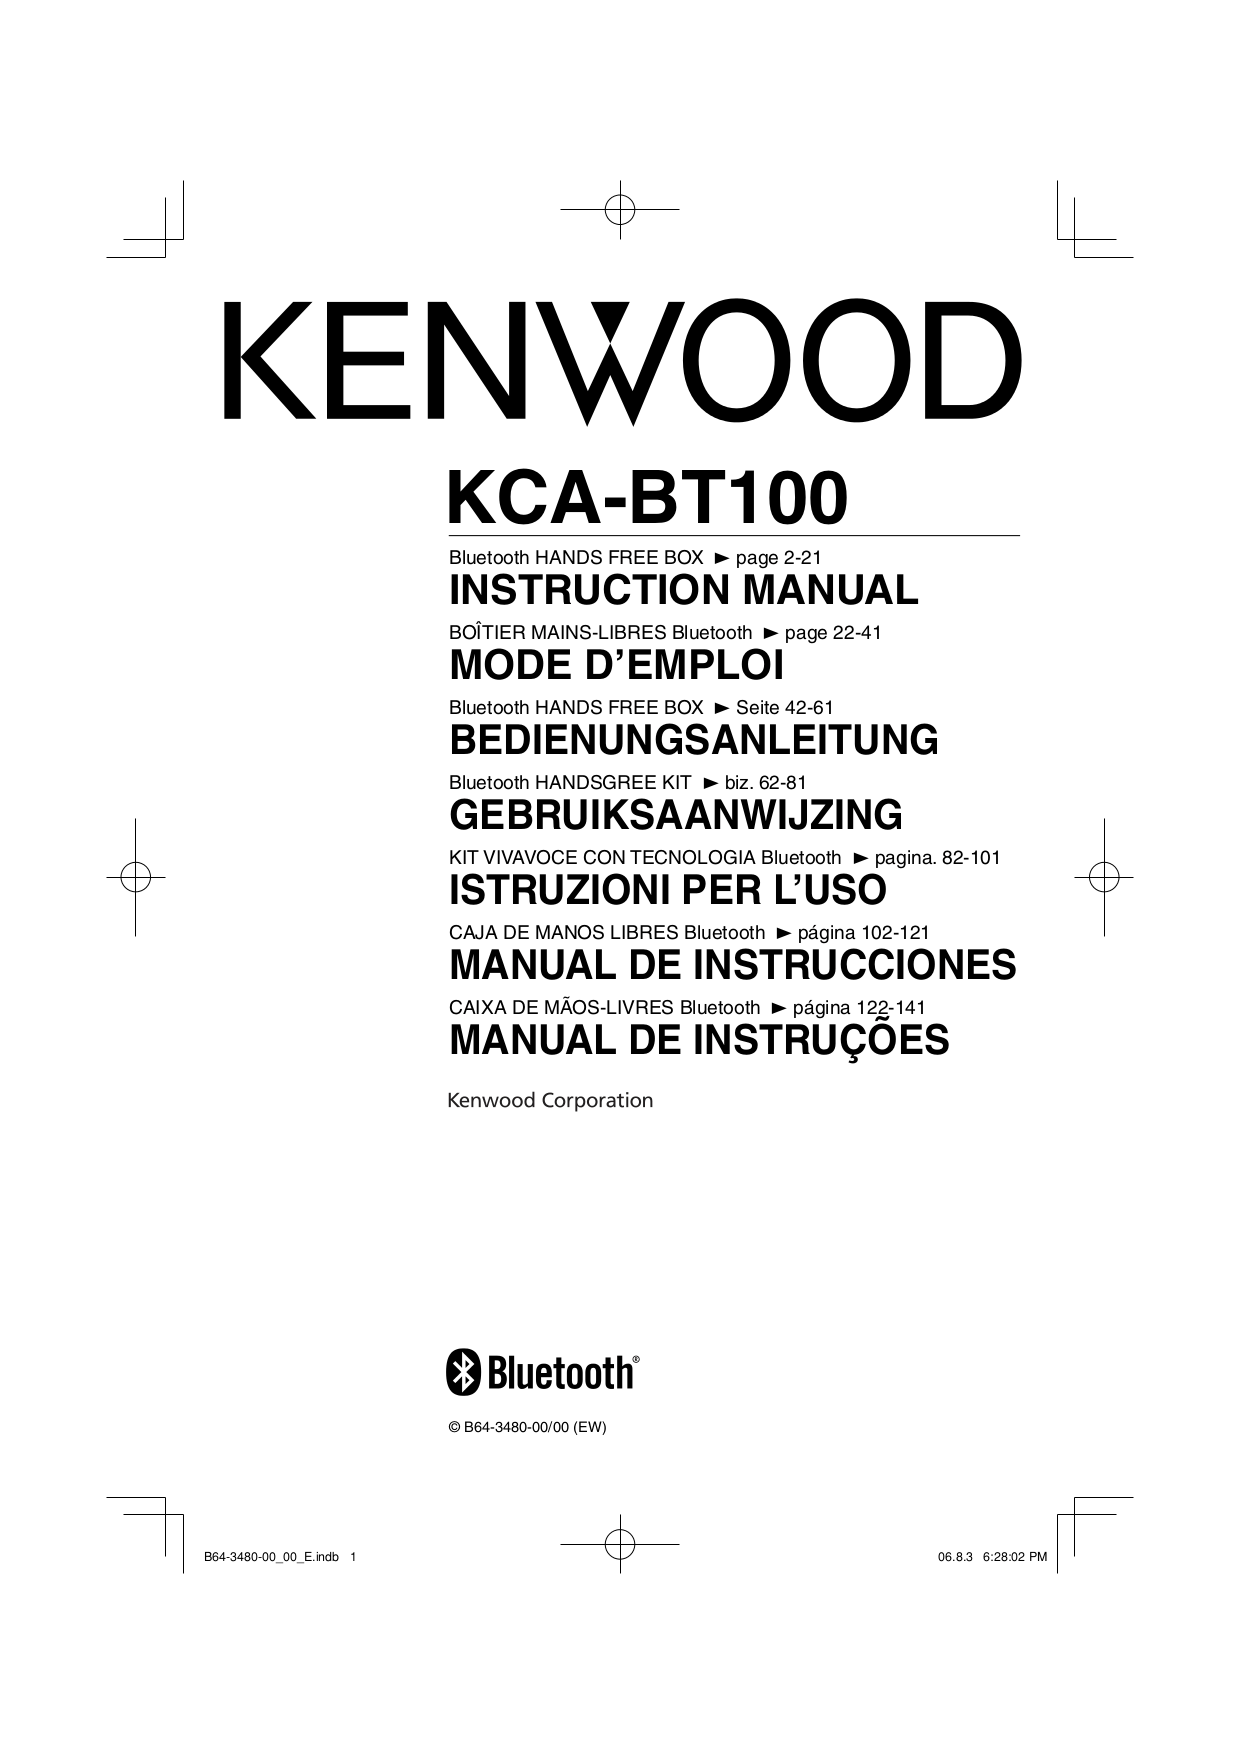 Download free pdf for Kenwood KDC-122 Car Receiver manual